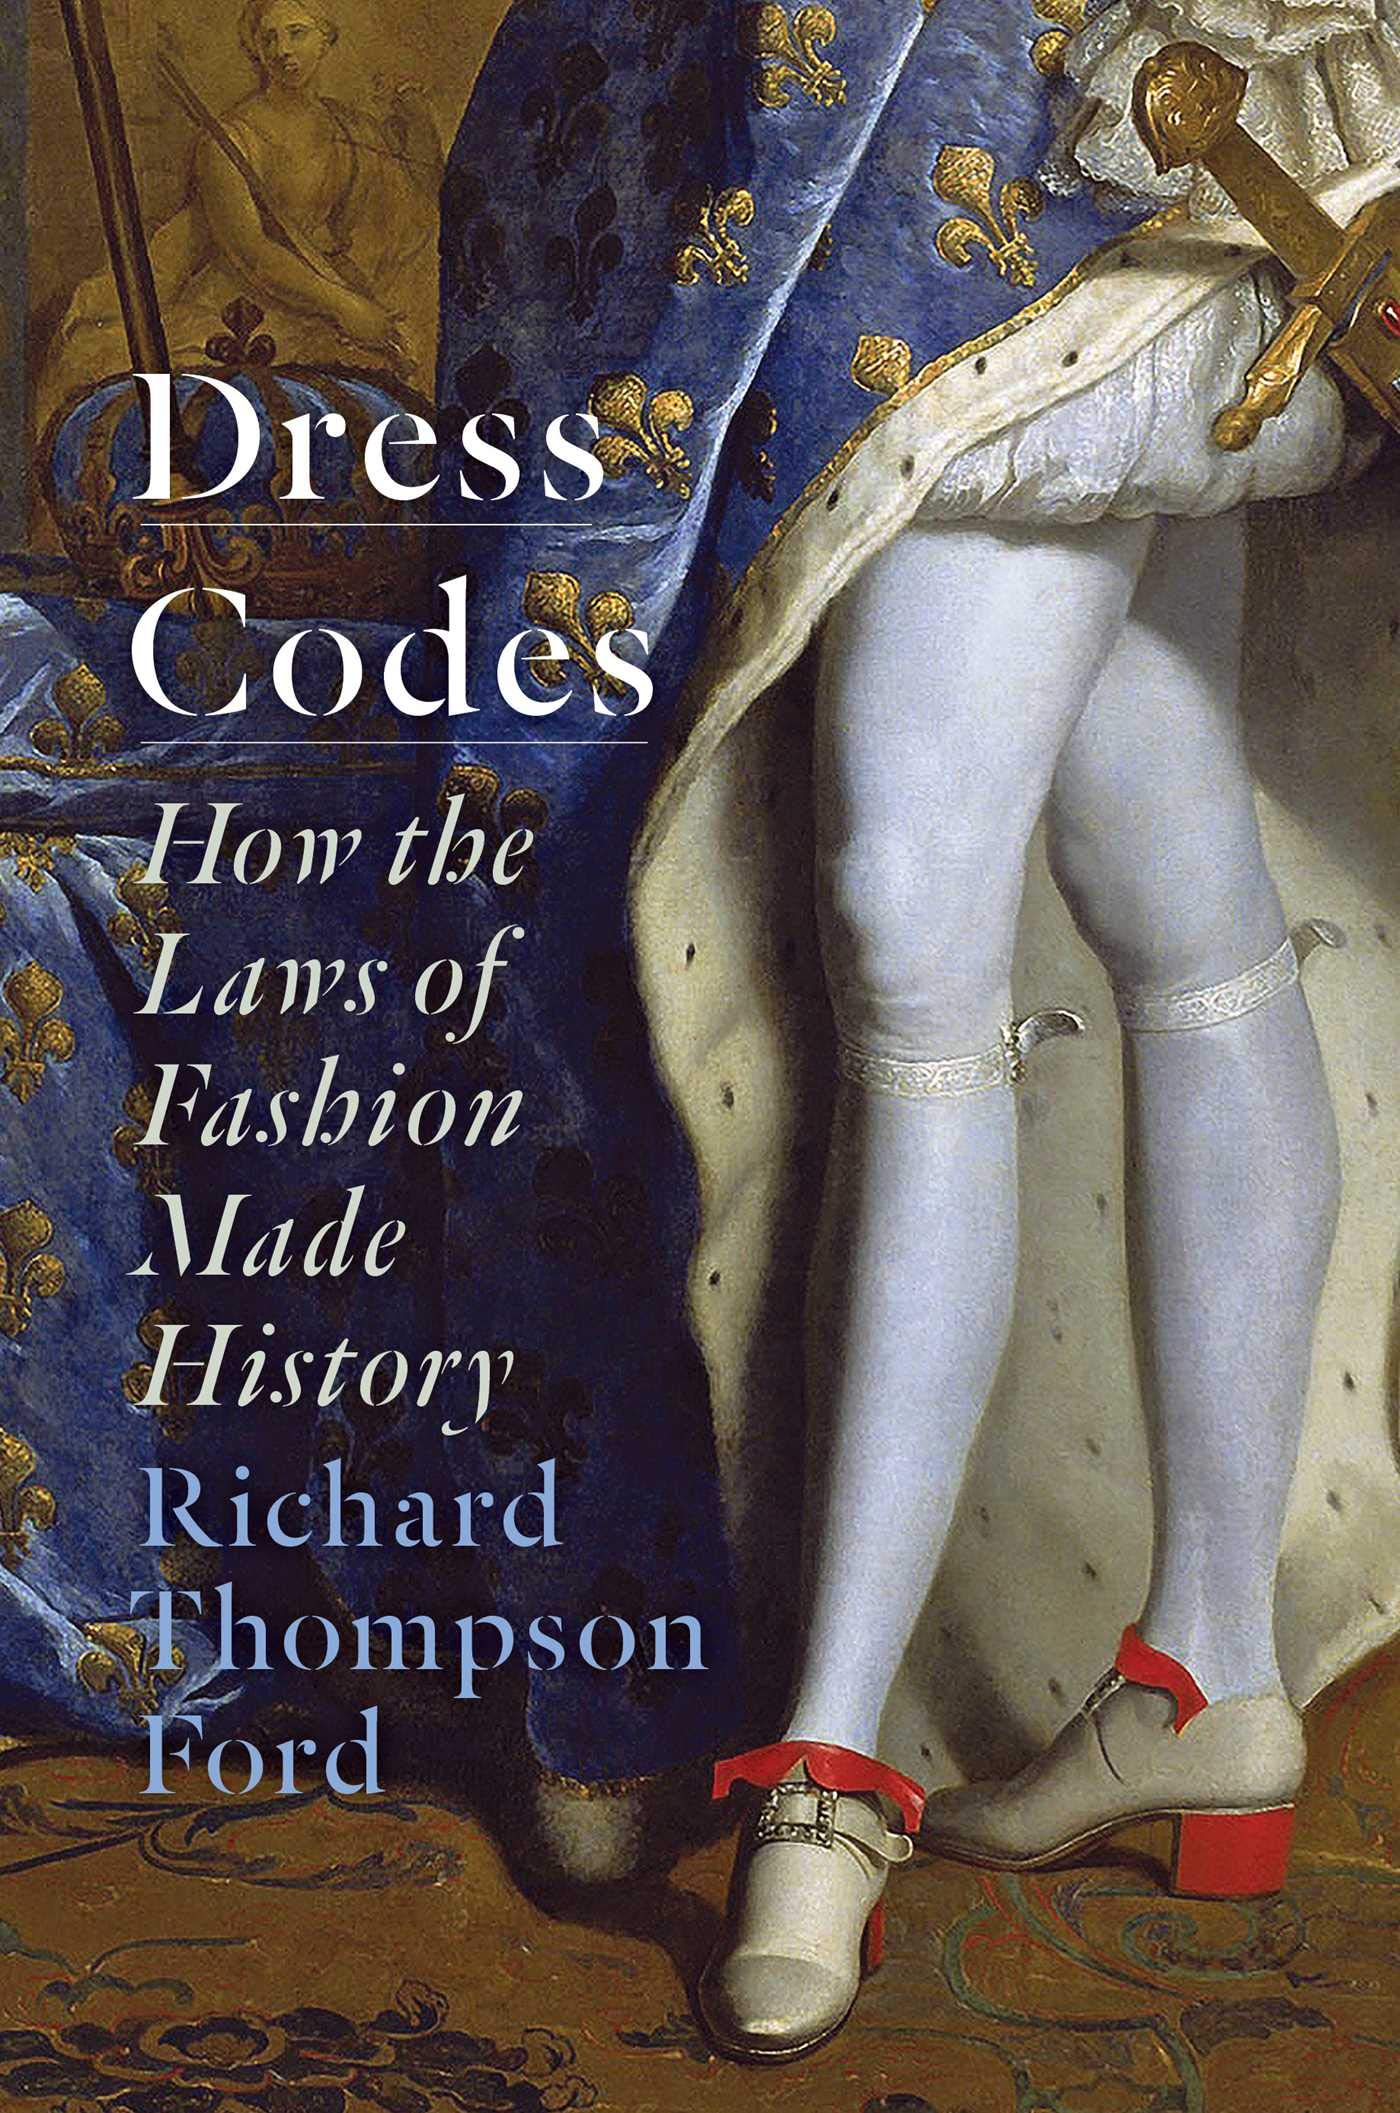 Dress codes by Richard Thompson Ford